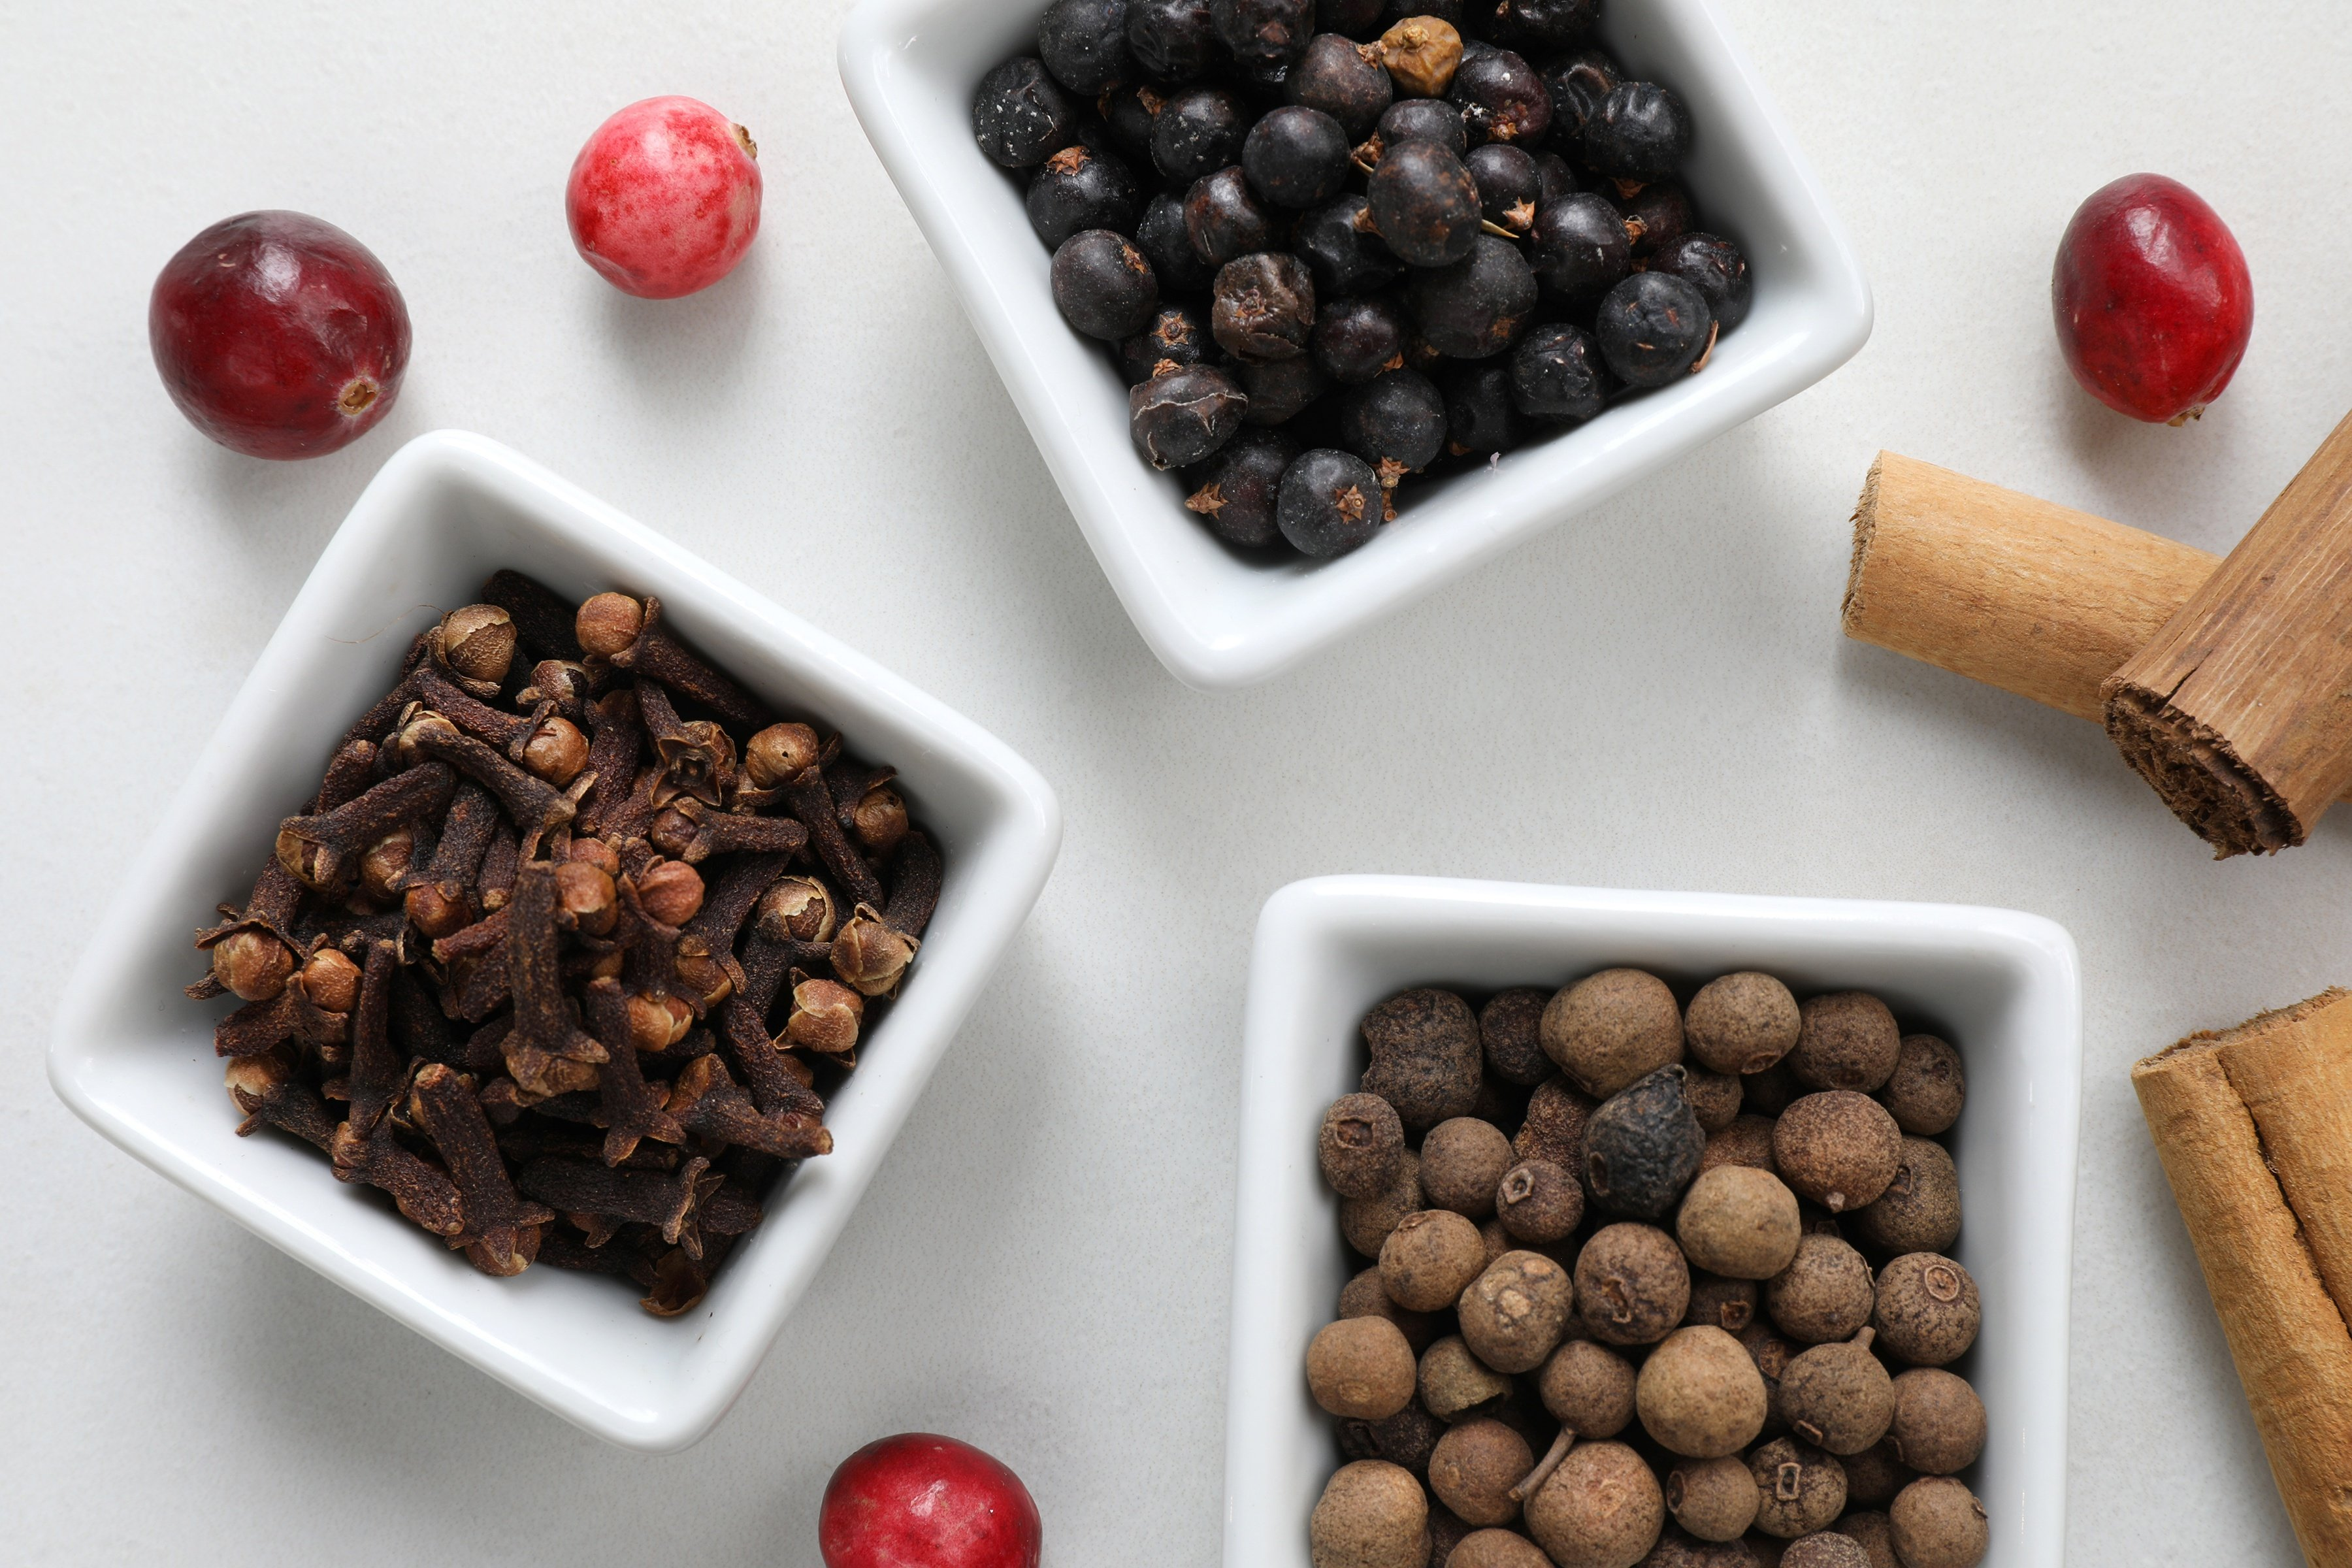 Ceramic bowls with whole clove and allspice for making pickled crannberries